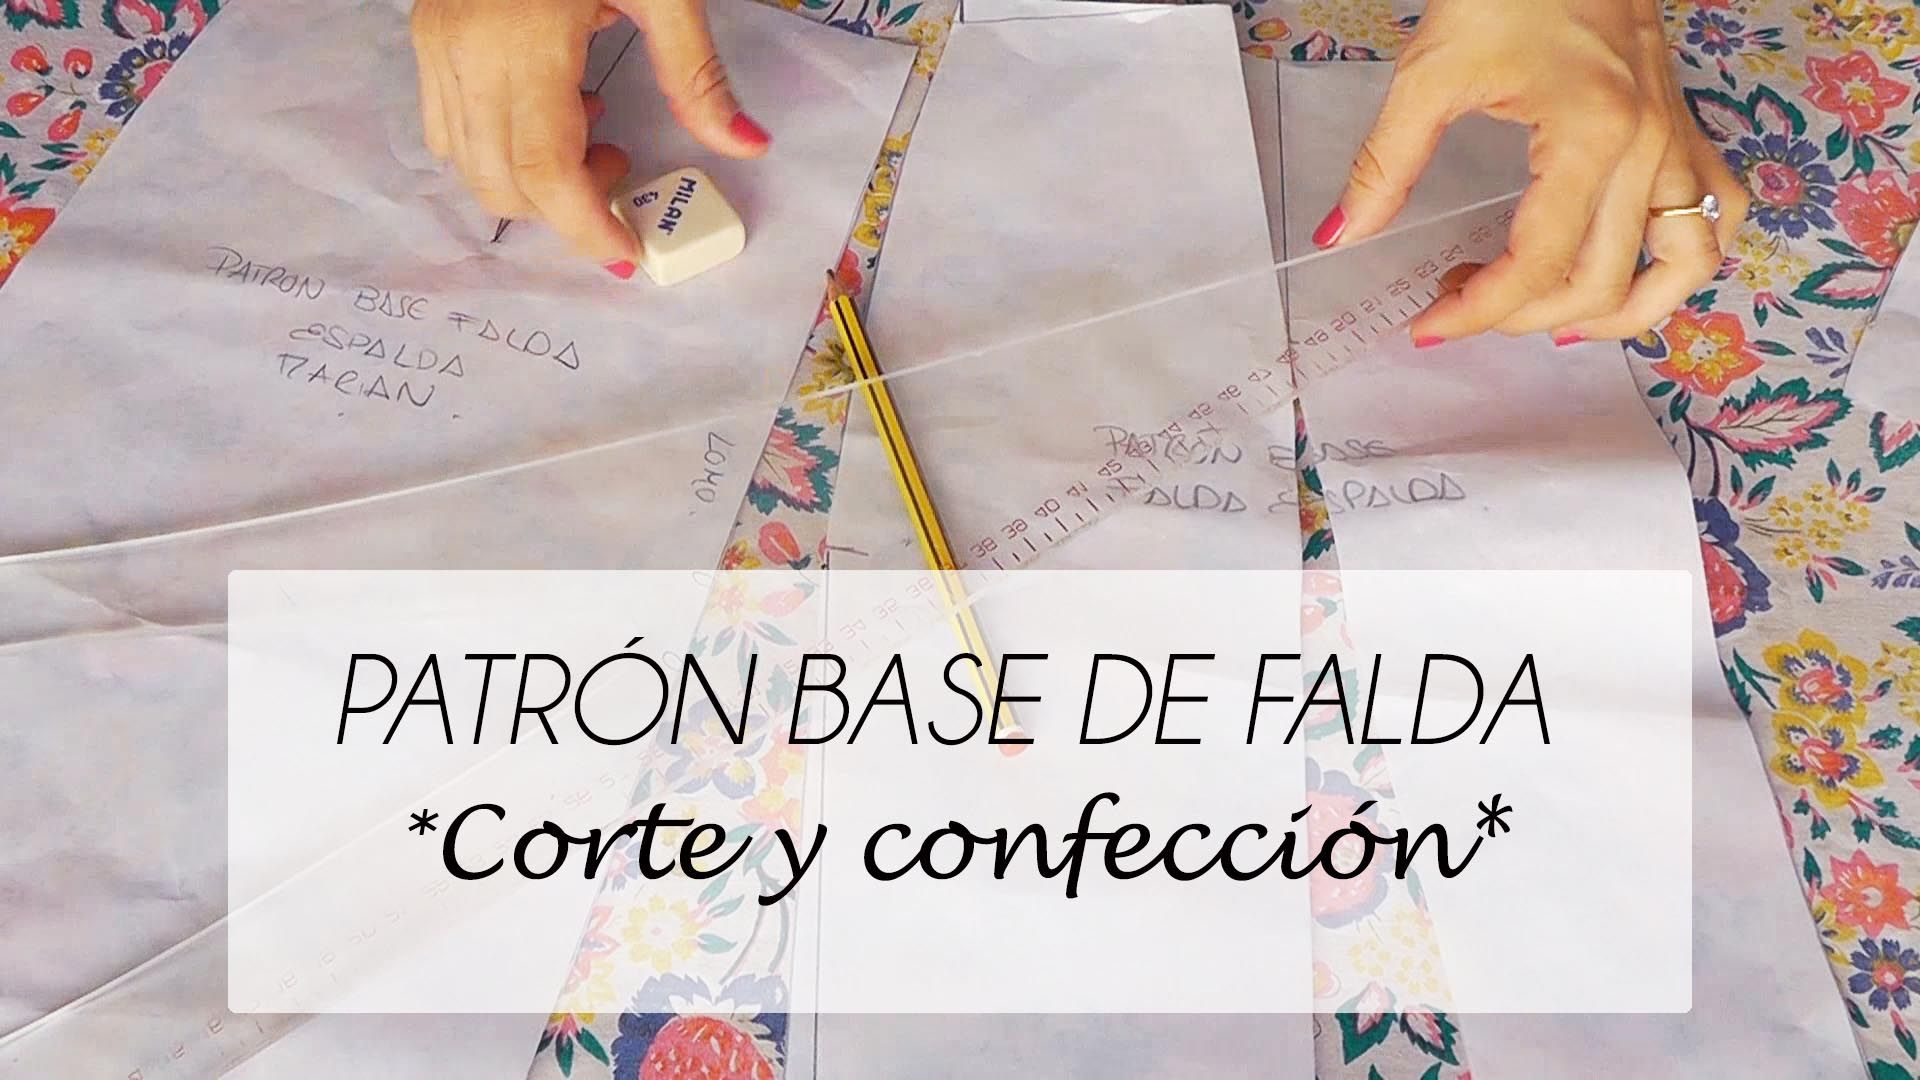 VIDEO TUTORIAL PATRÓN BASE DE FALDA (PATRONAJE)